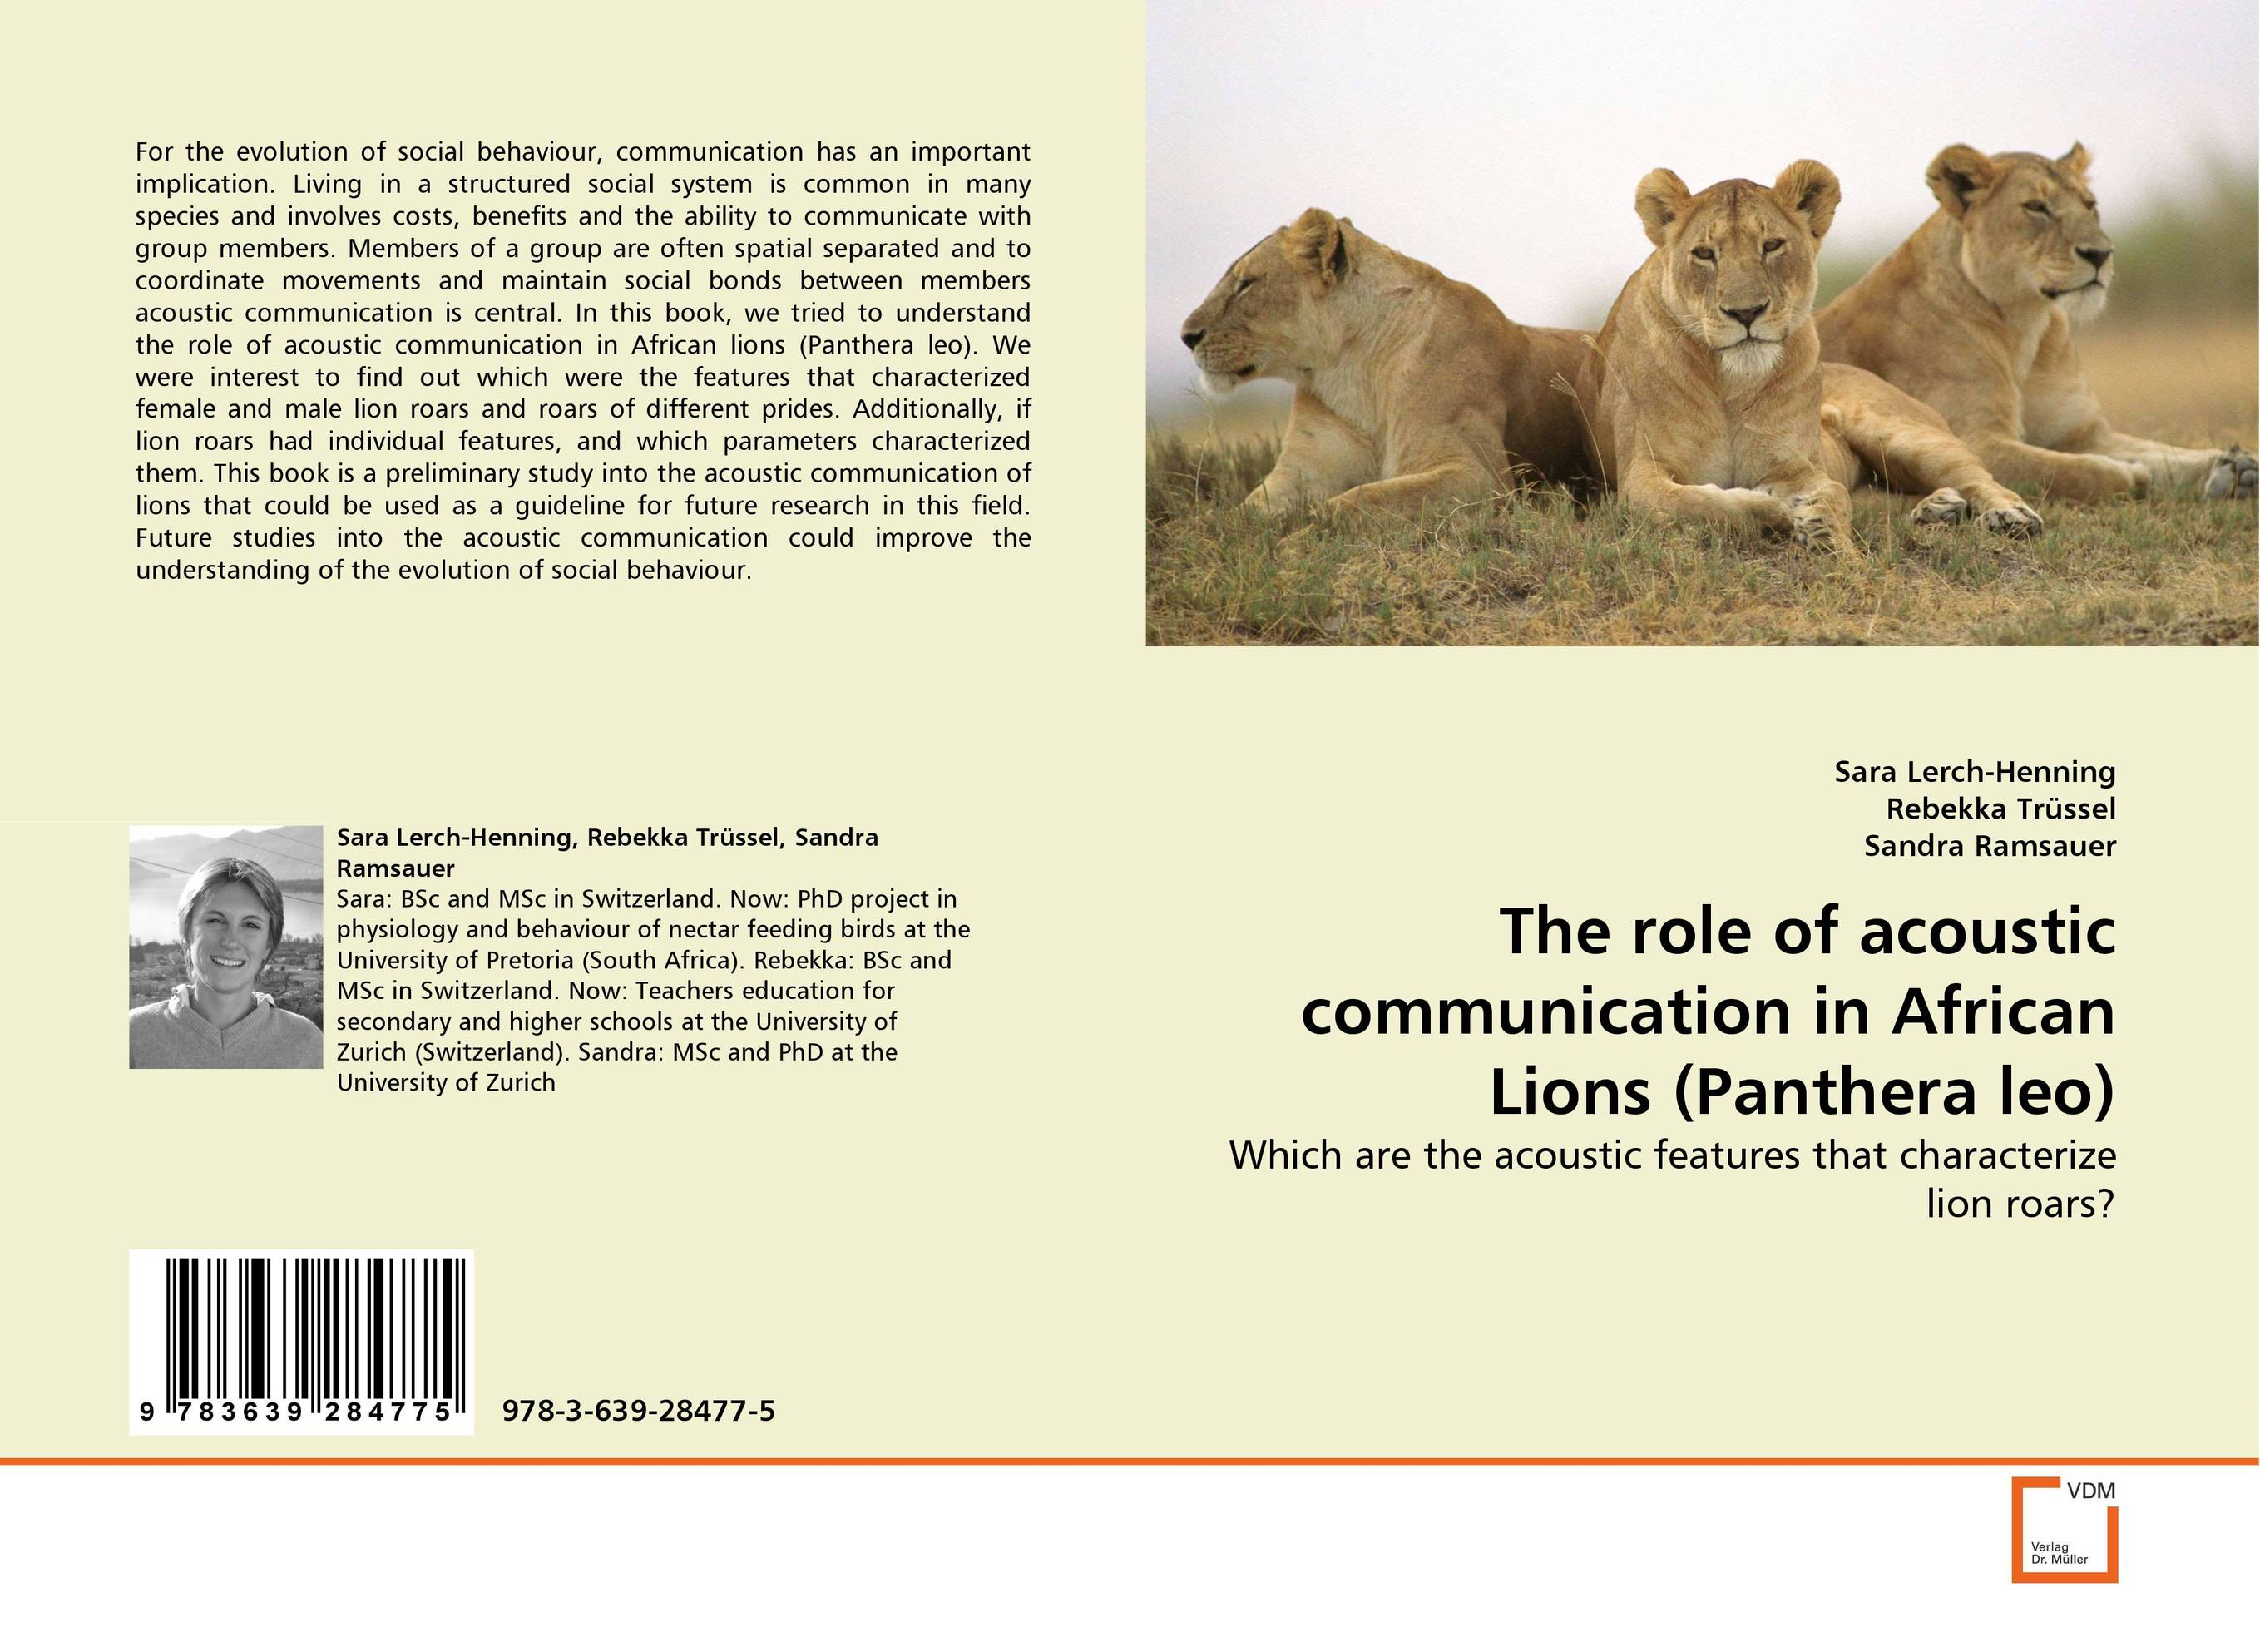 The role of acoustic communication in African Lions (Panthera leo) lung model with larynx and heart 7 parts advanced lung and heart model respiratory system model